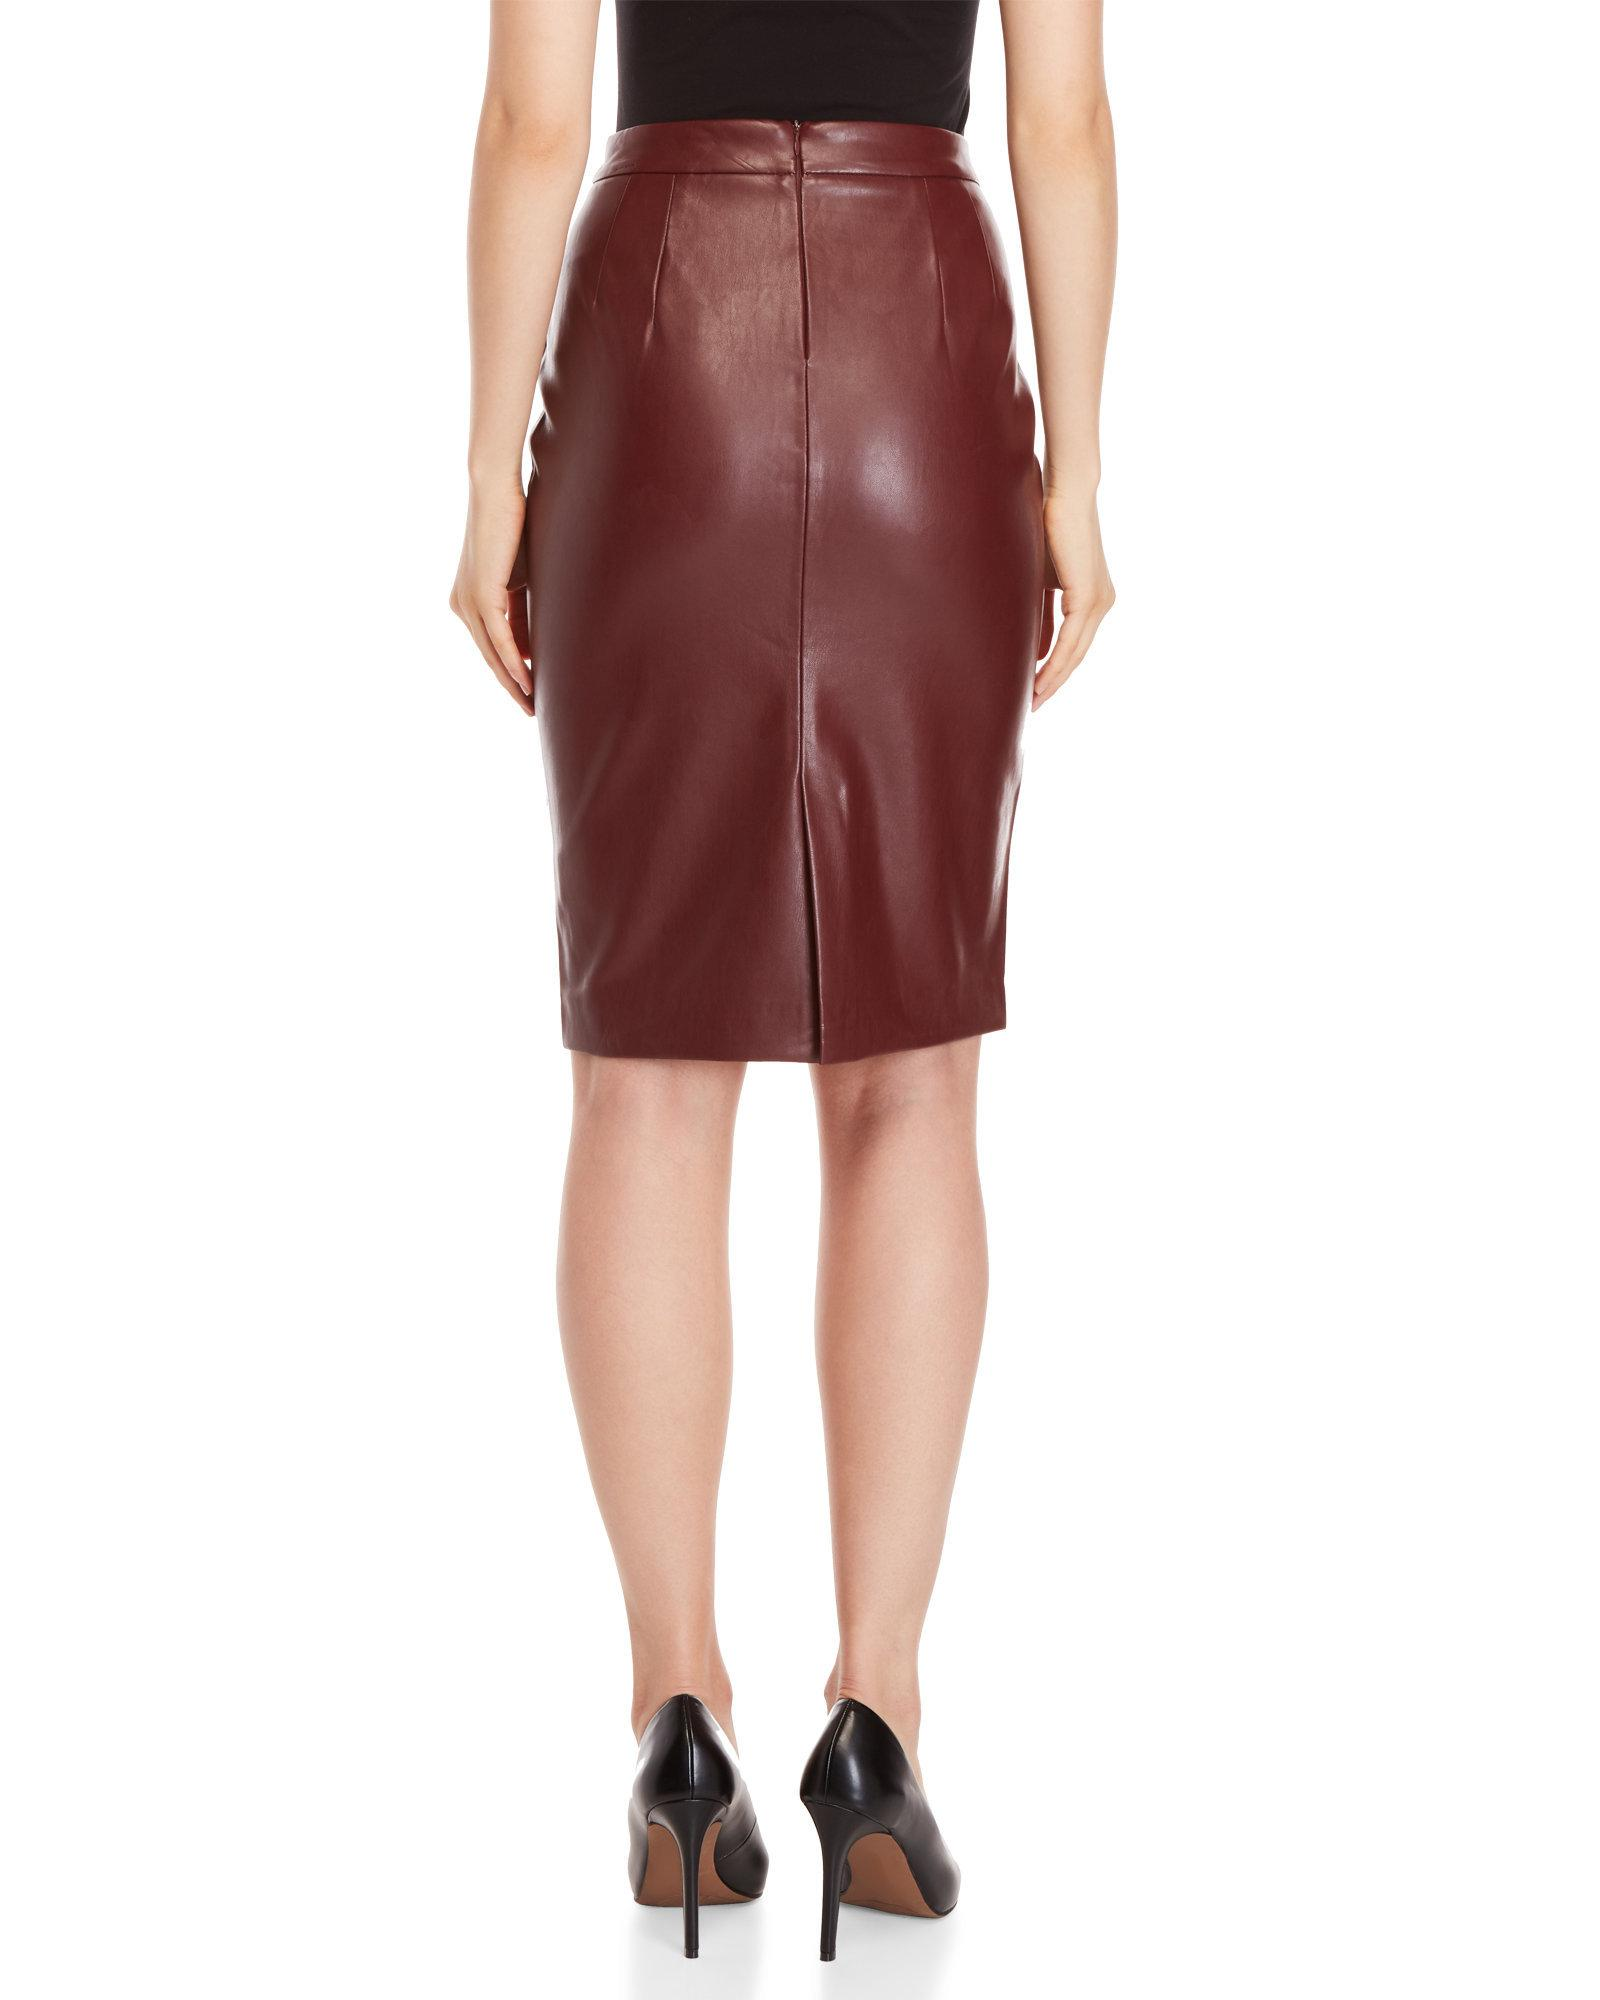 H By Bordeaux French Terry Hi-Lo Skirt Black L NWT $68